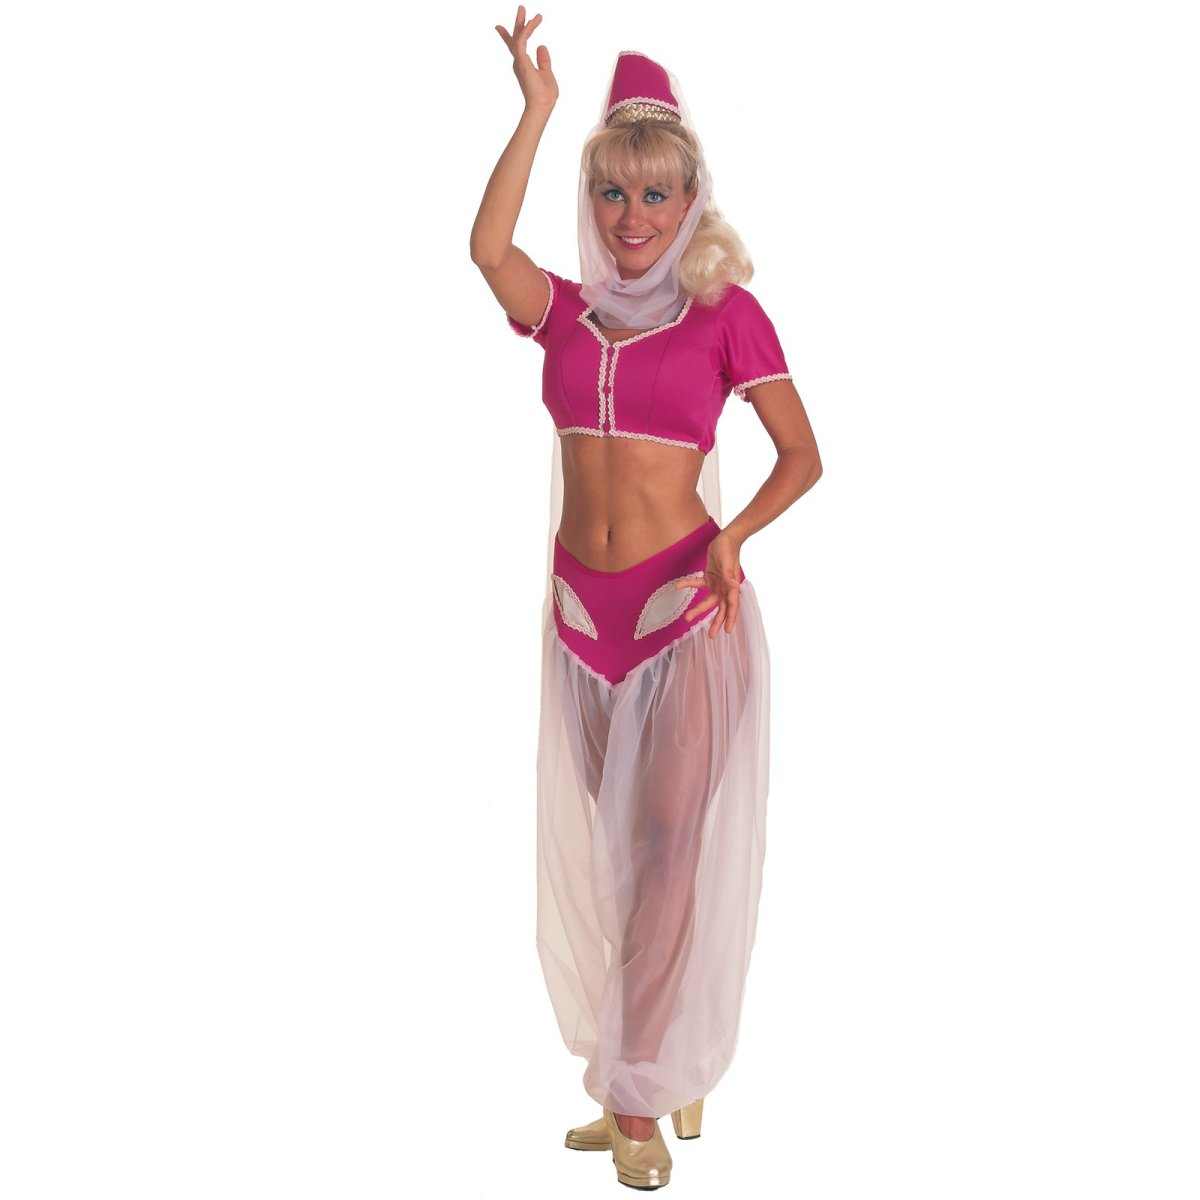 Vintage I Dream of Jeannie Costume